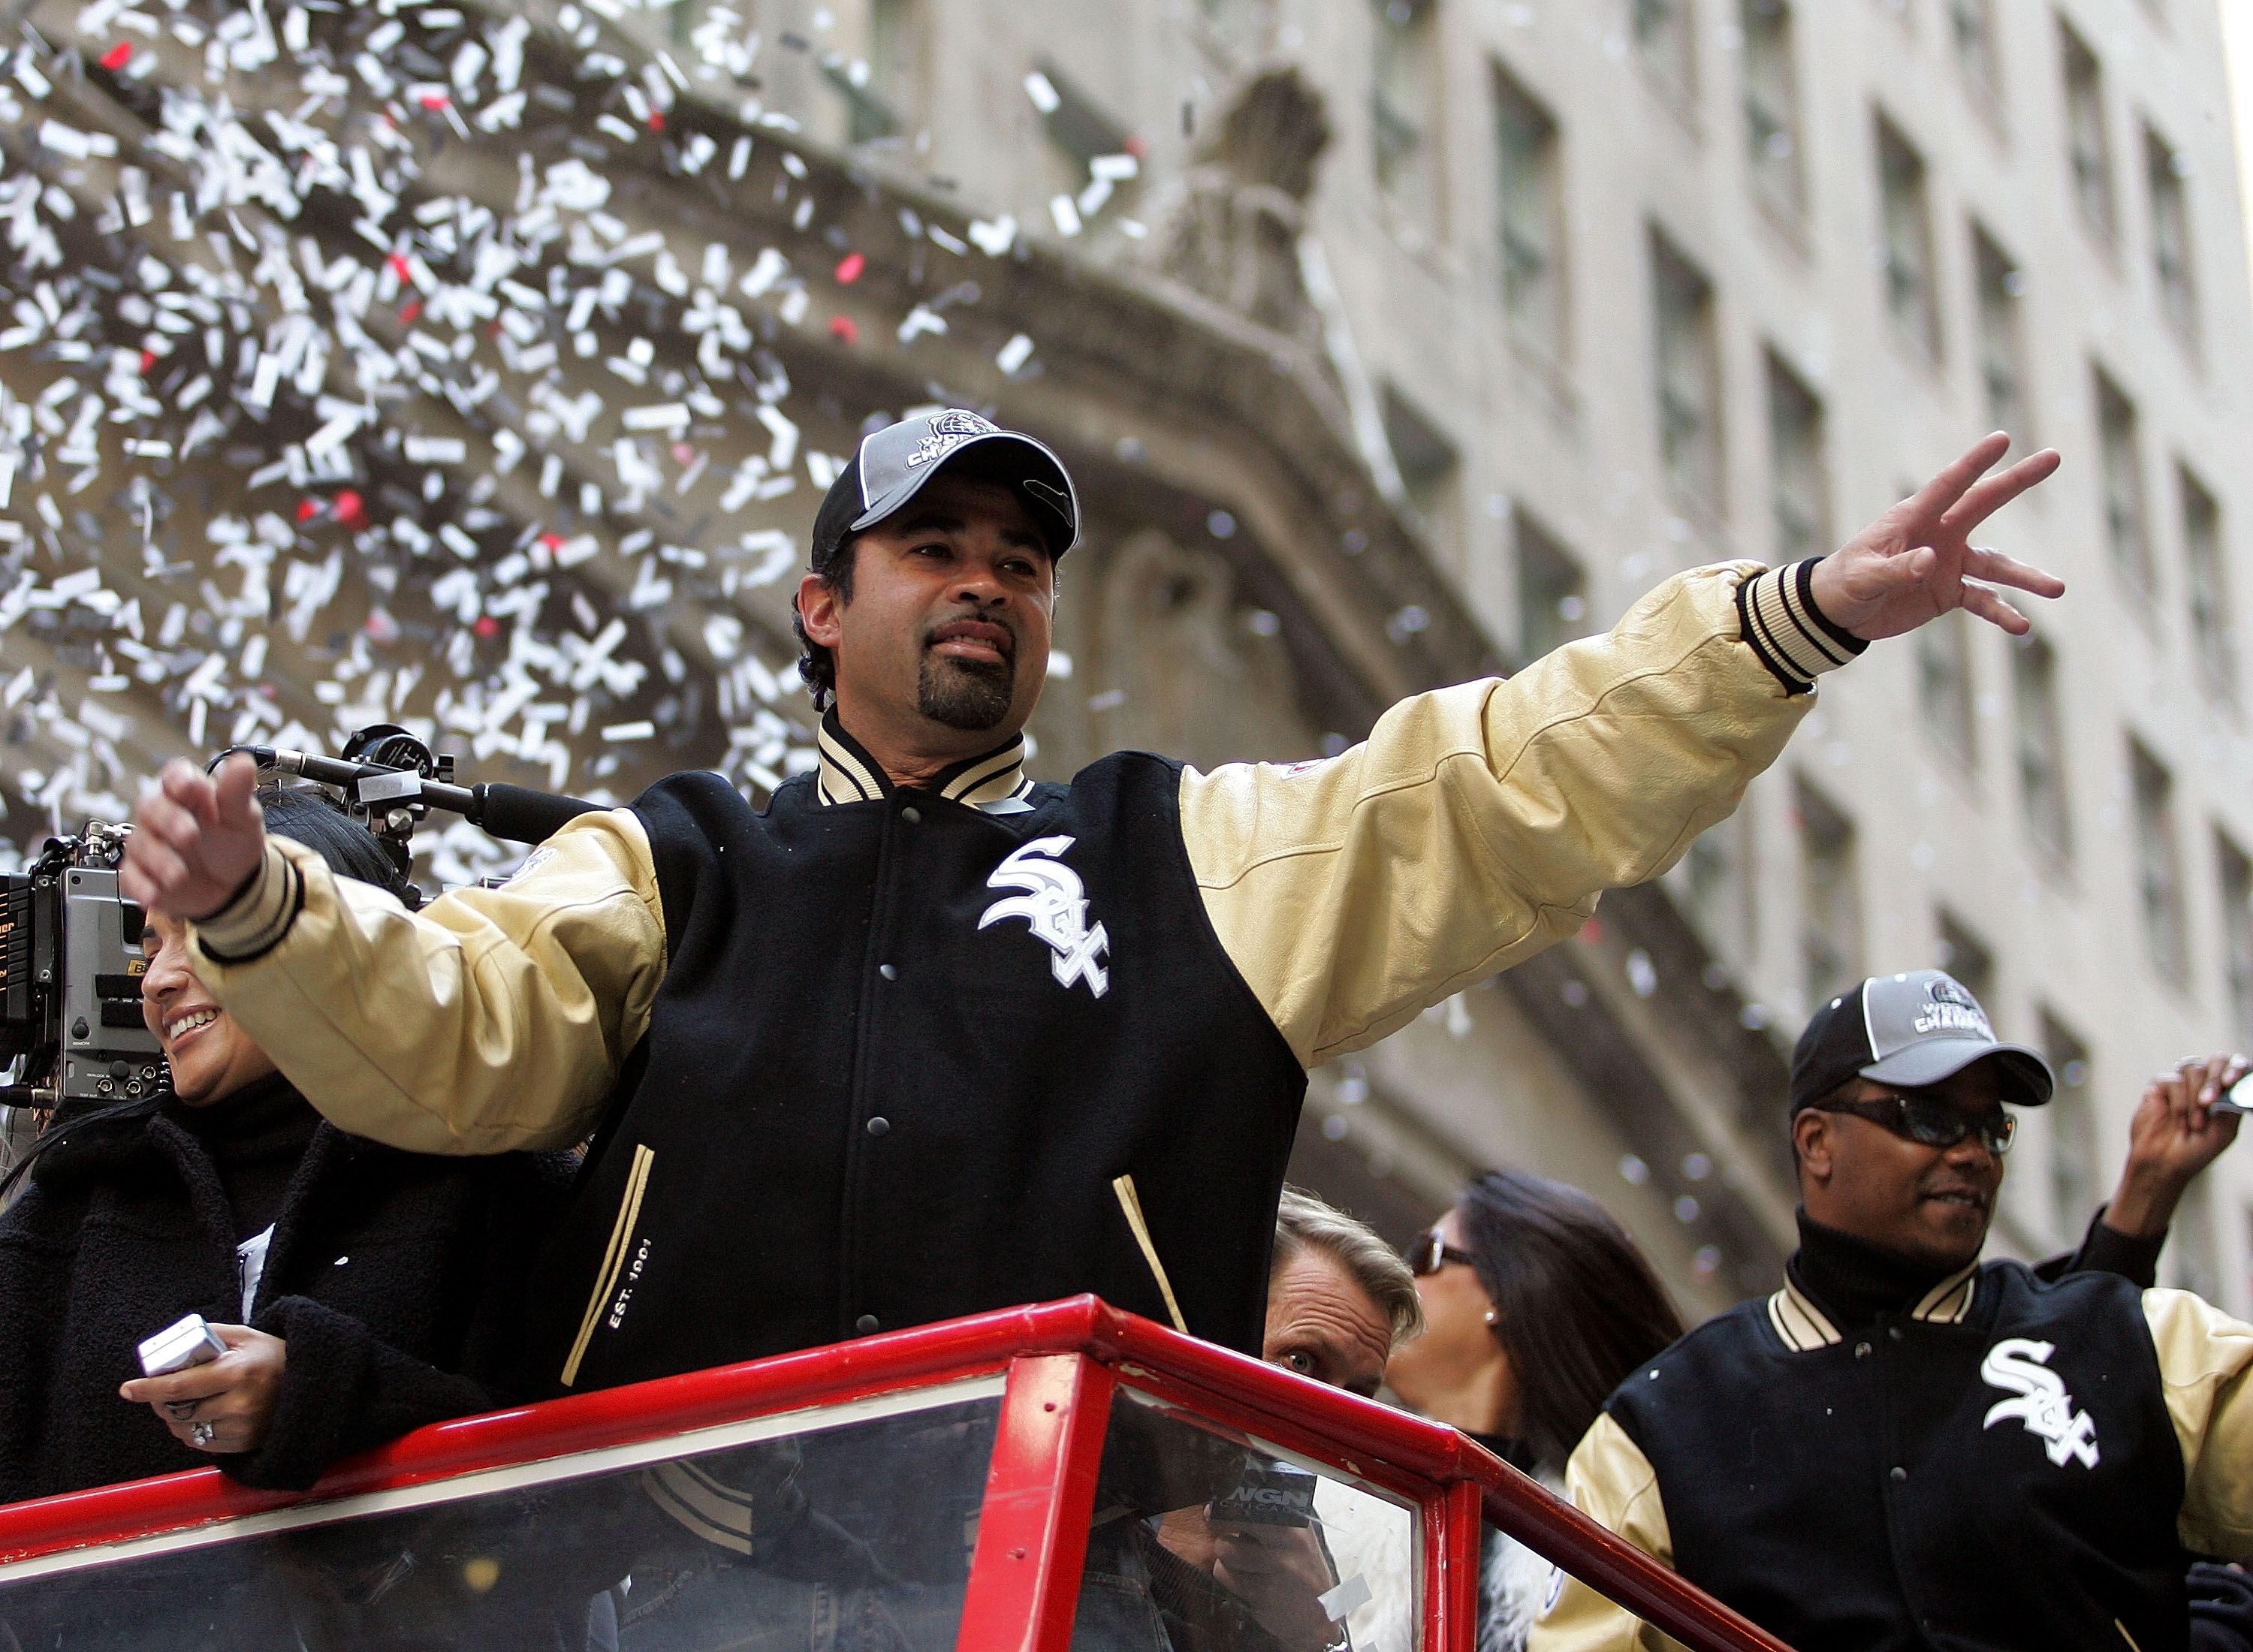 CHICAGO - OCTOBER 28:  Chicago White Sox manager Ozzie Guillen waves to fans from a double-decker bus during a ticker-tape parade for the White Sox baseball team October 28, 2005 in downtown Chicago, Illinois. The Chicago White Sox won their first World S